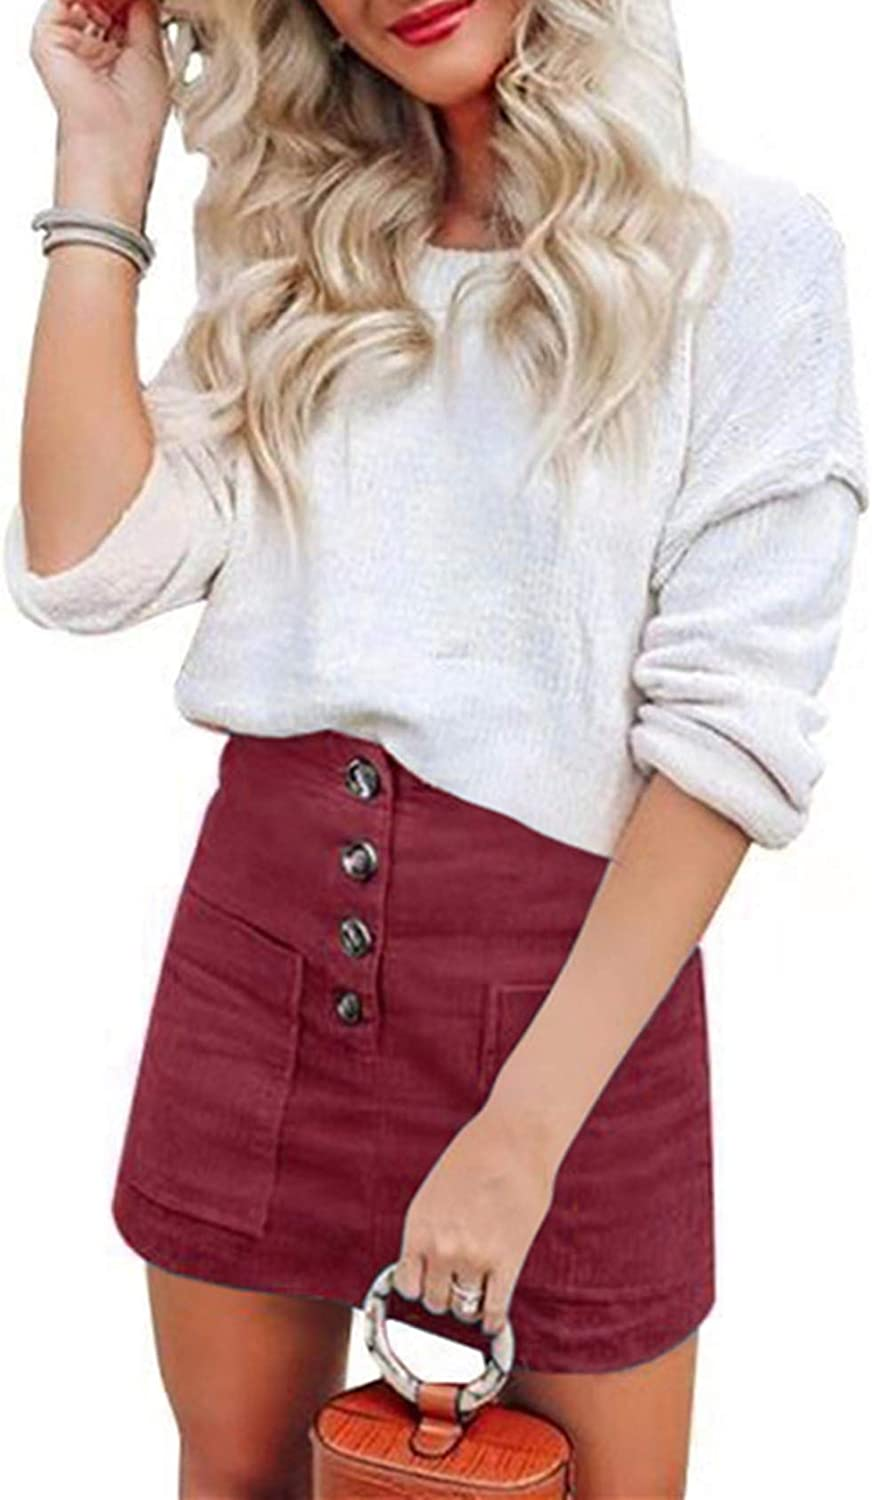 katiewens Women's Casual A-Line High Waisted Bodycon Button Pocket Corduroy Mini Skirt